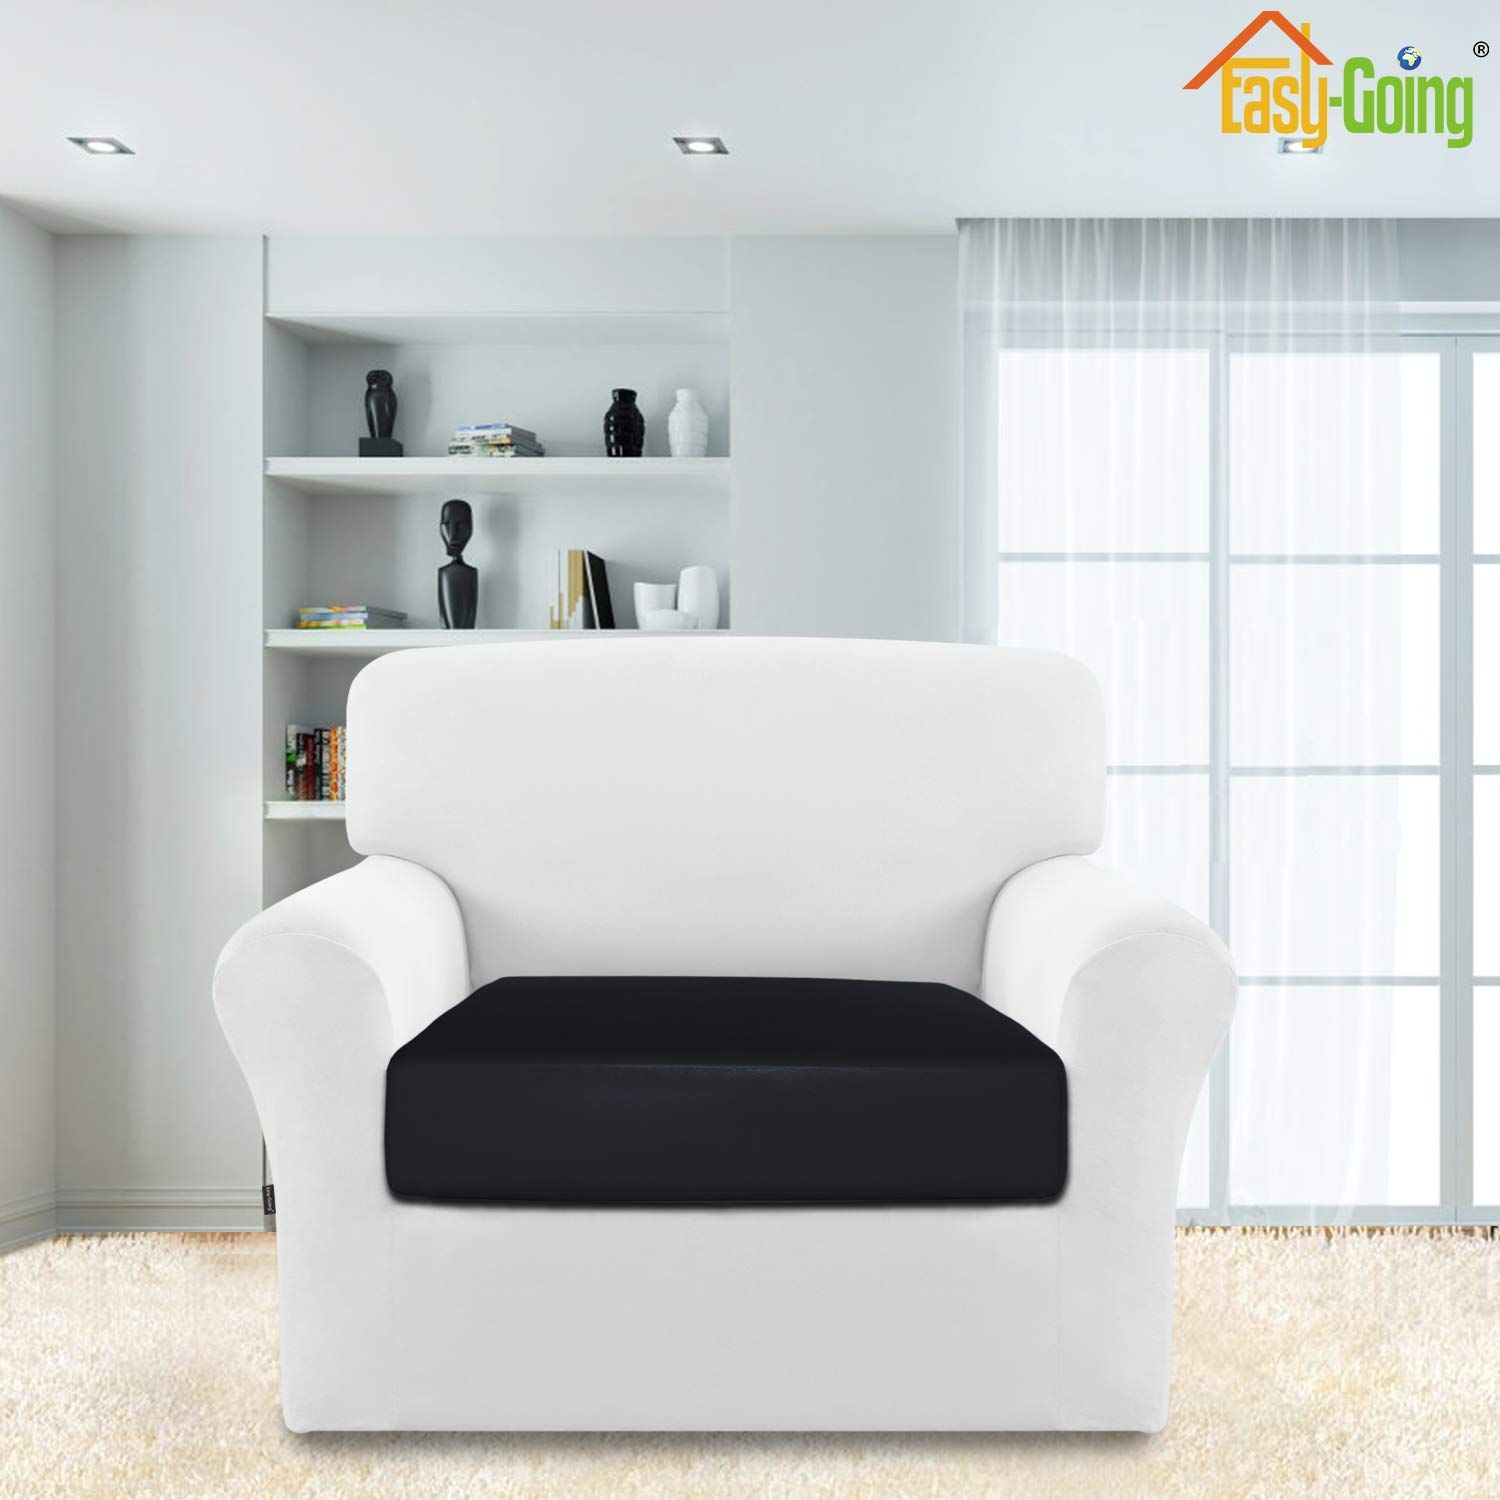 EasyGoing Waterproof Sofa Couch Cushion Cover Removable